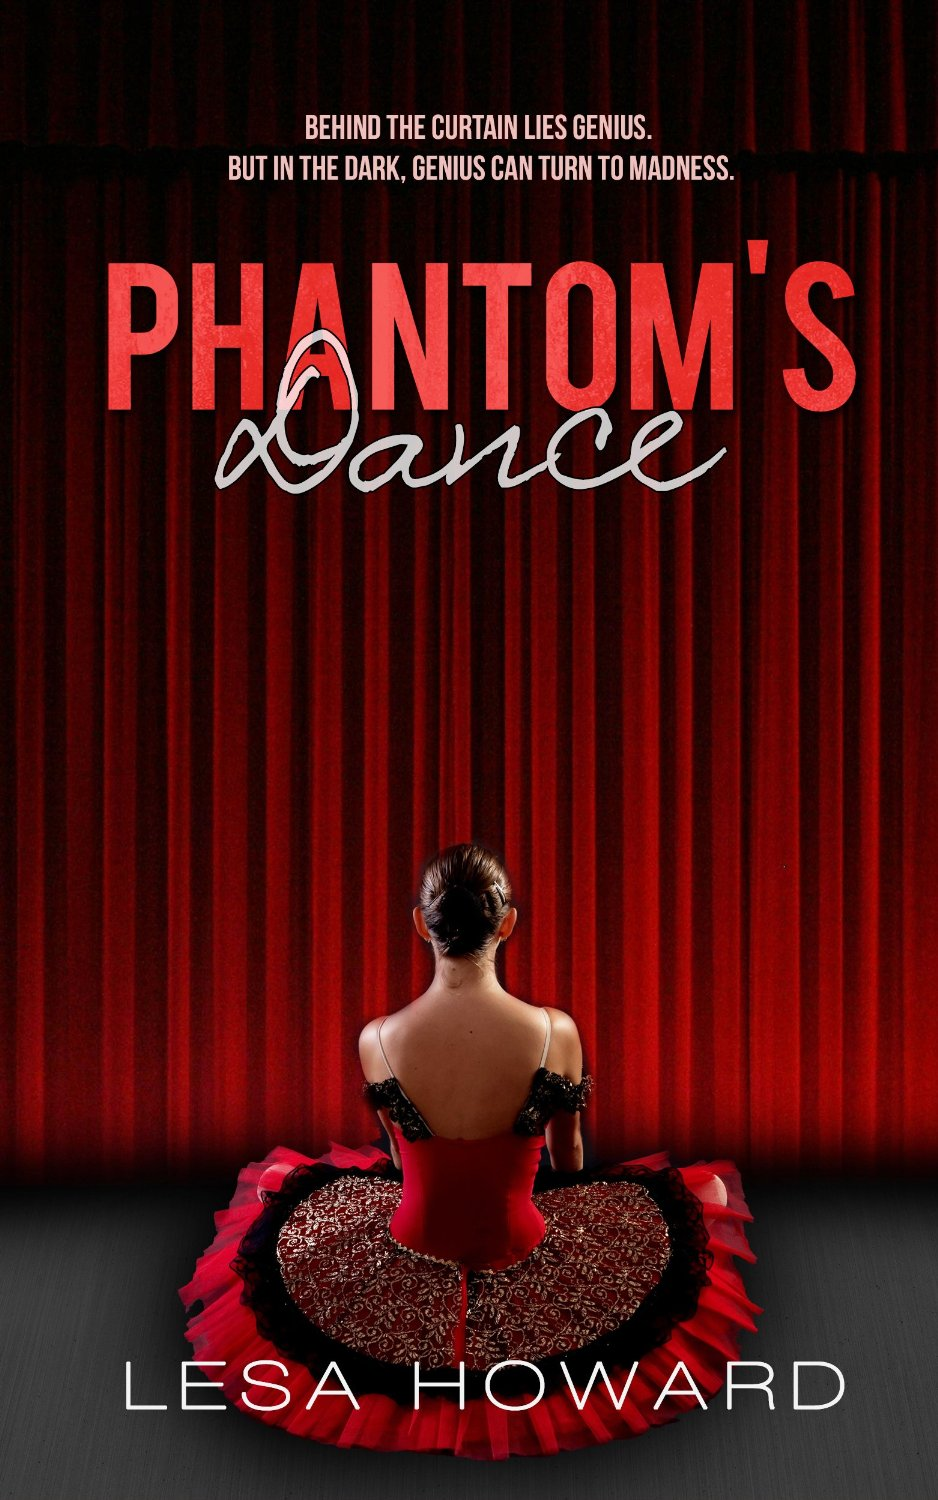 Phantom's Dance